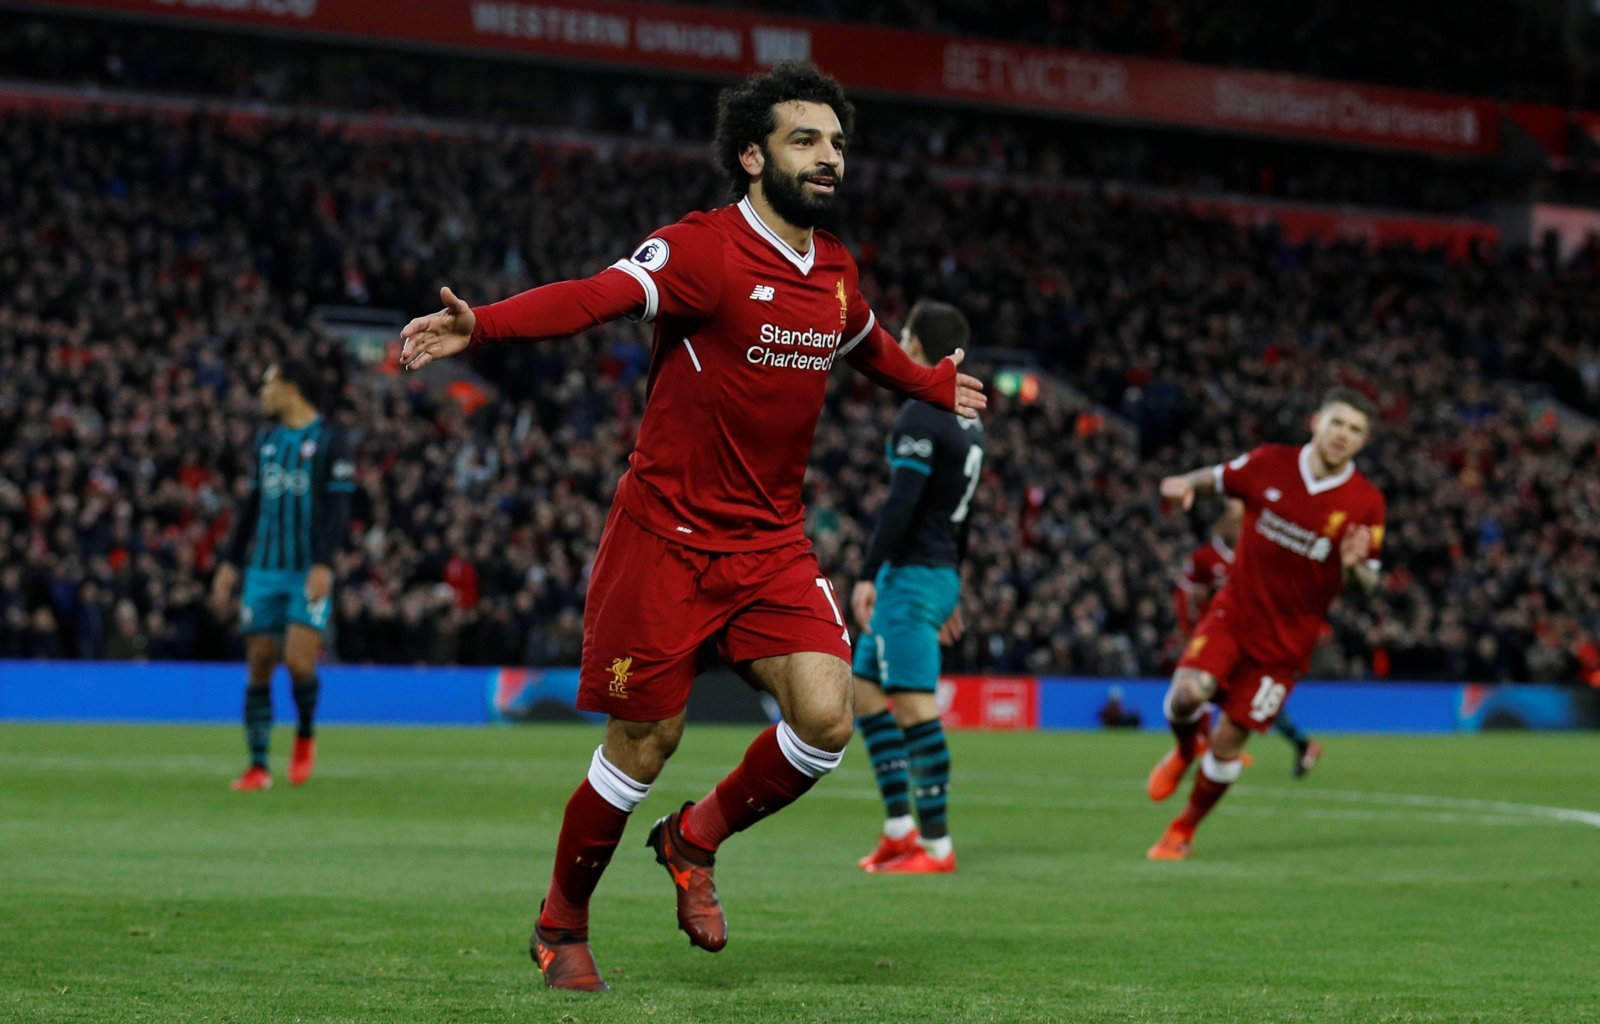 Liverpool: Fans admire Mohamed Salah's incredible scoring record vs Watford